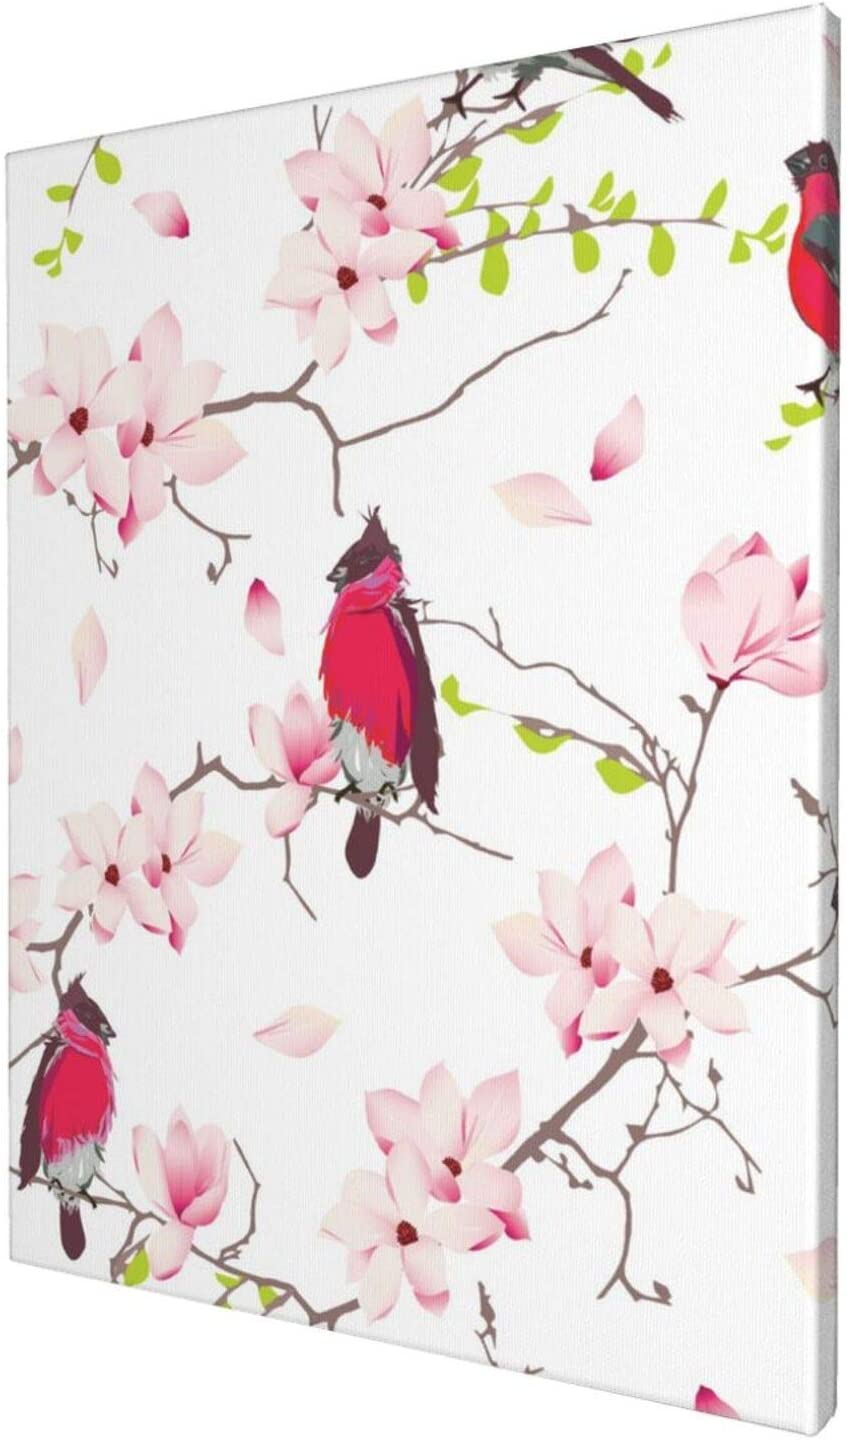 Abstract Wall Art Gallery Wall Decor, Cute Red Bullfinches Wall Paintings, Farmhouse Decor for the Home, Wall Pictures for Living Room Frameless Wall Hanging Decor Paintings 12x16 inch